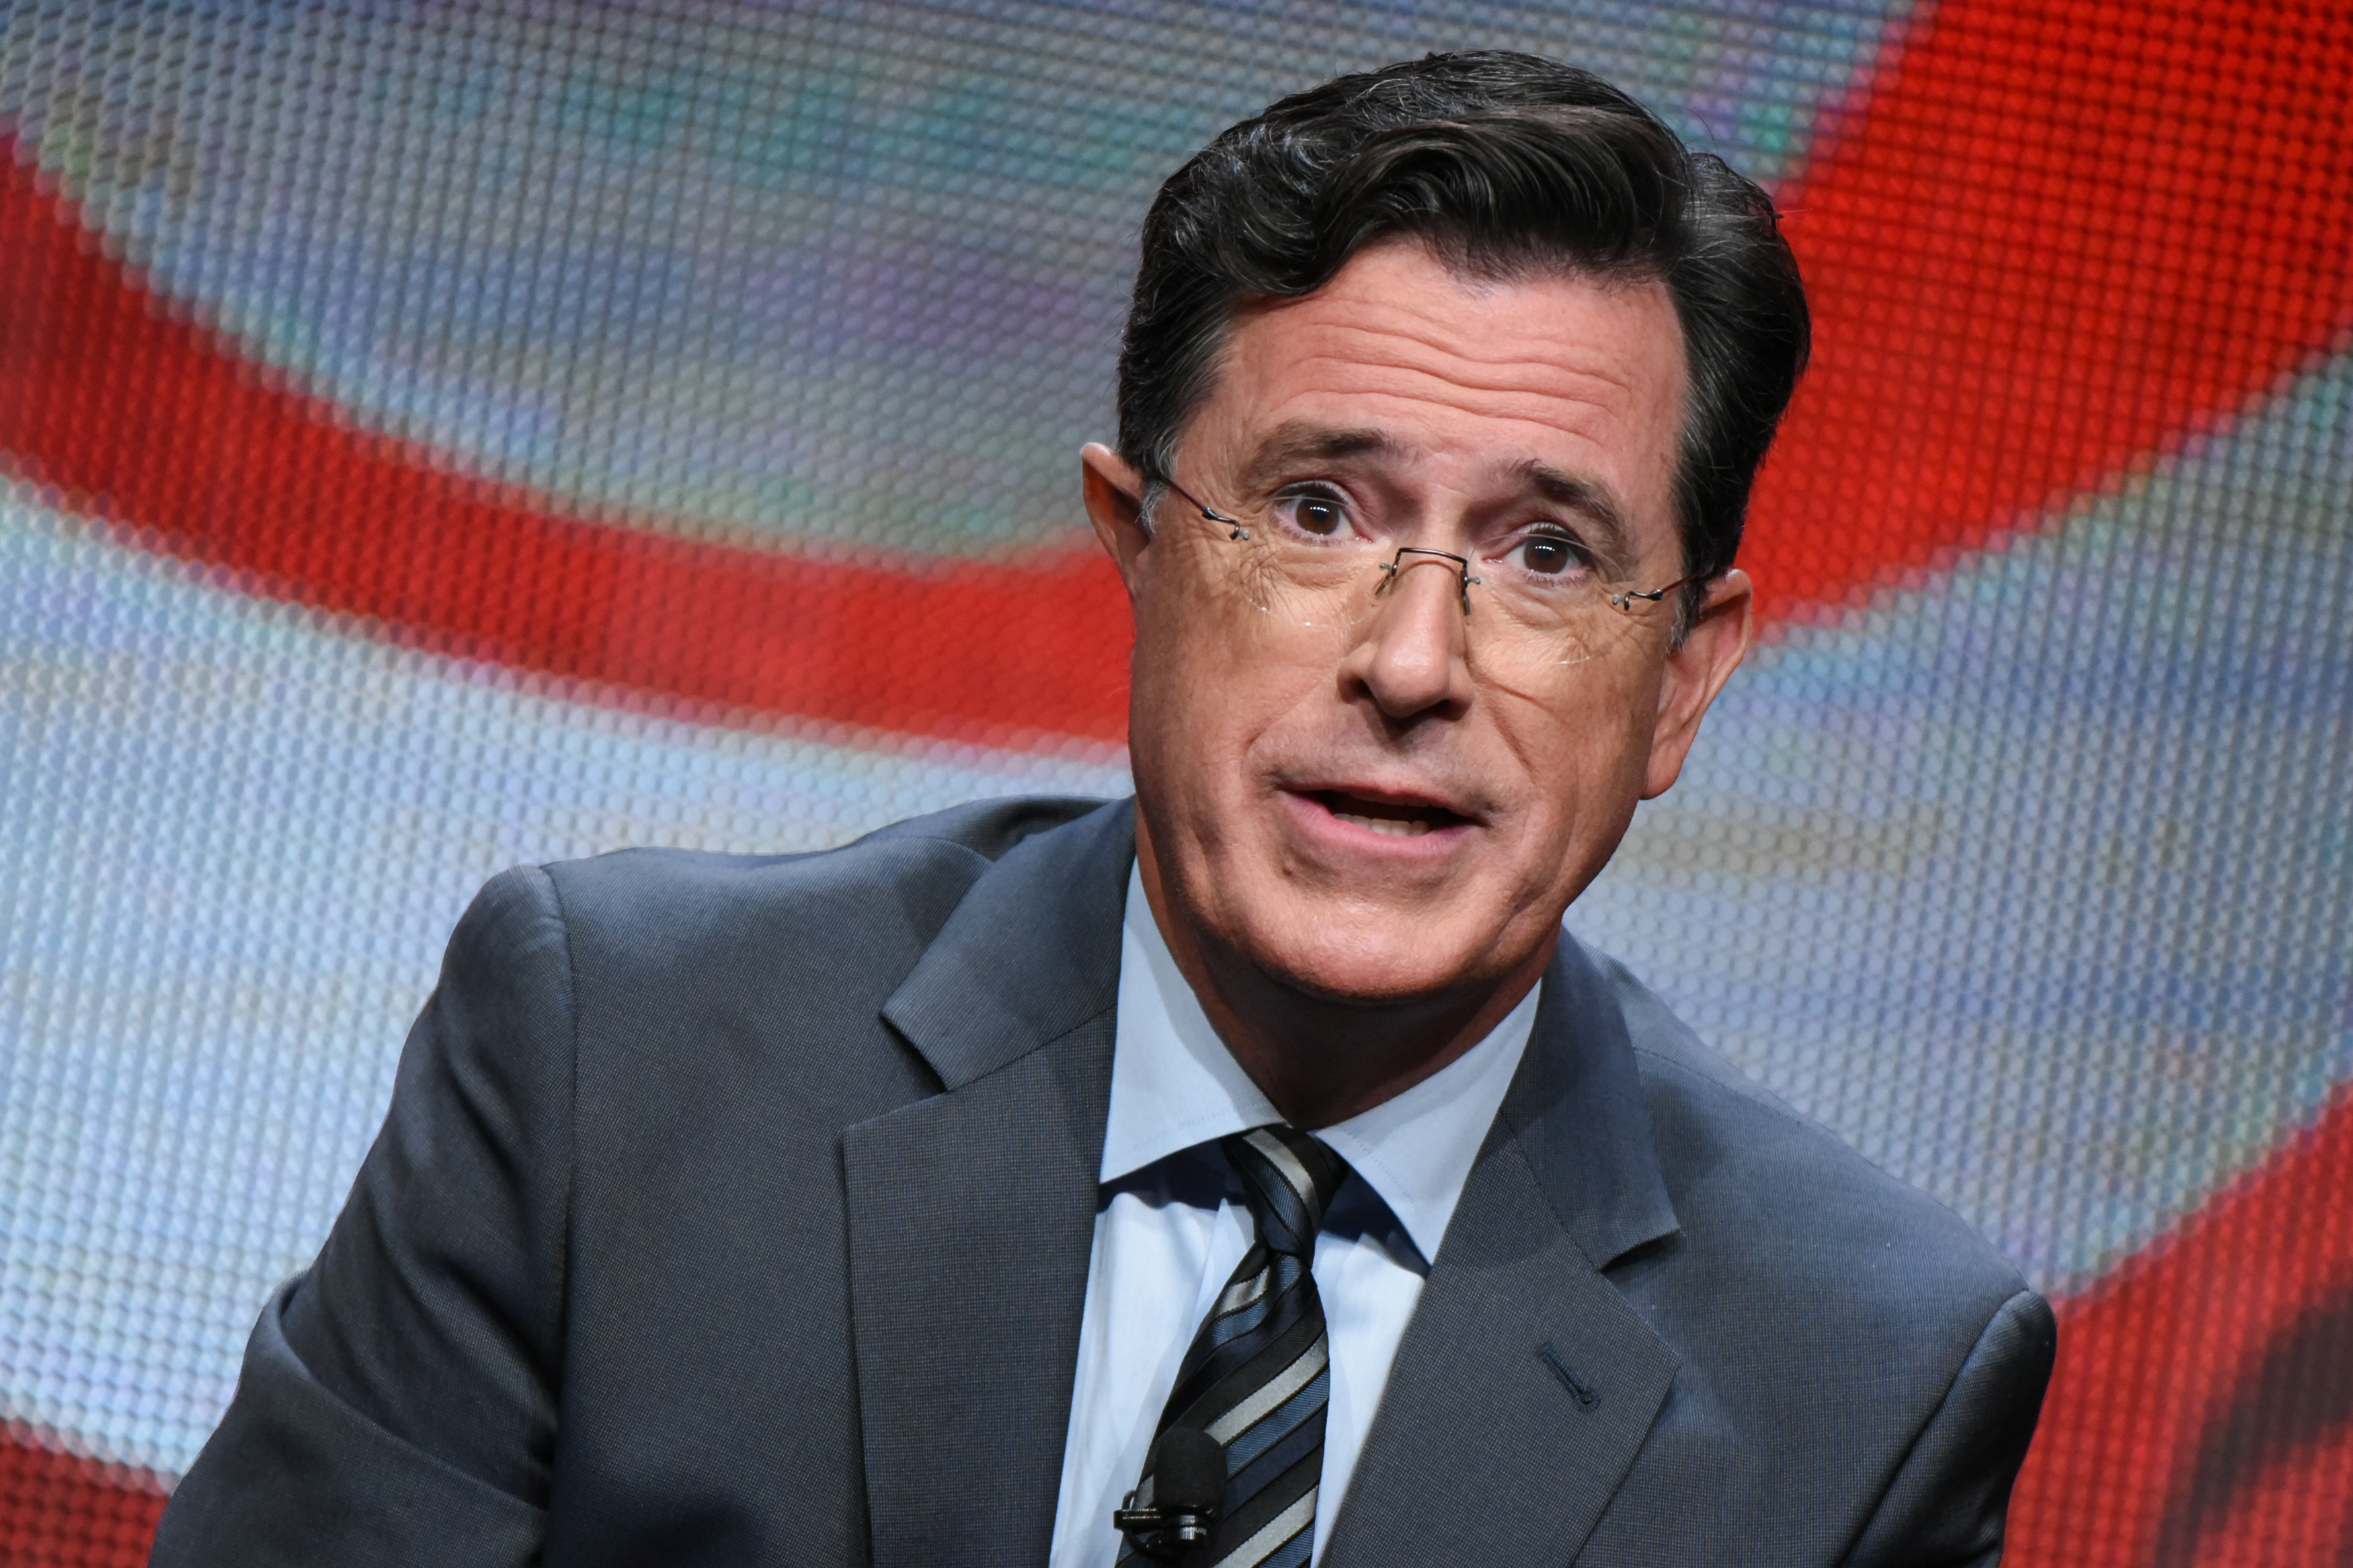 Stephen Colbert participates in  The Late Show with Stephen Colbert  segment of the CBS Summer TCA Tour at the Beverly Hilton Hotel in Beverly Hills, Calif., on Aug. 10, 2015.